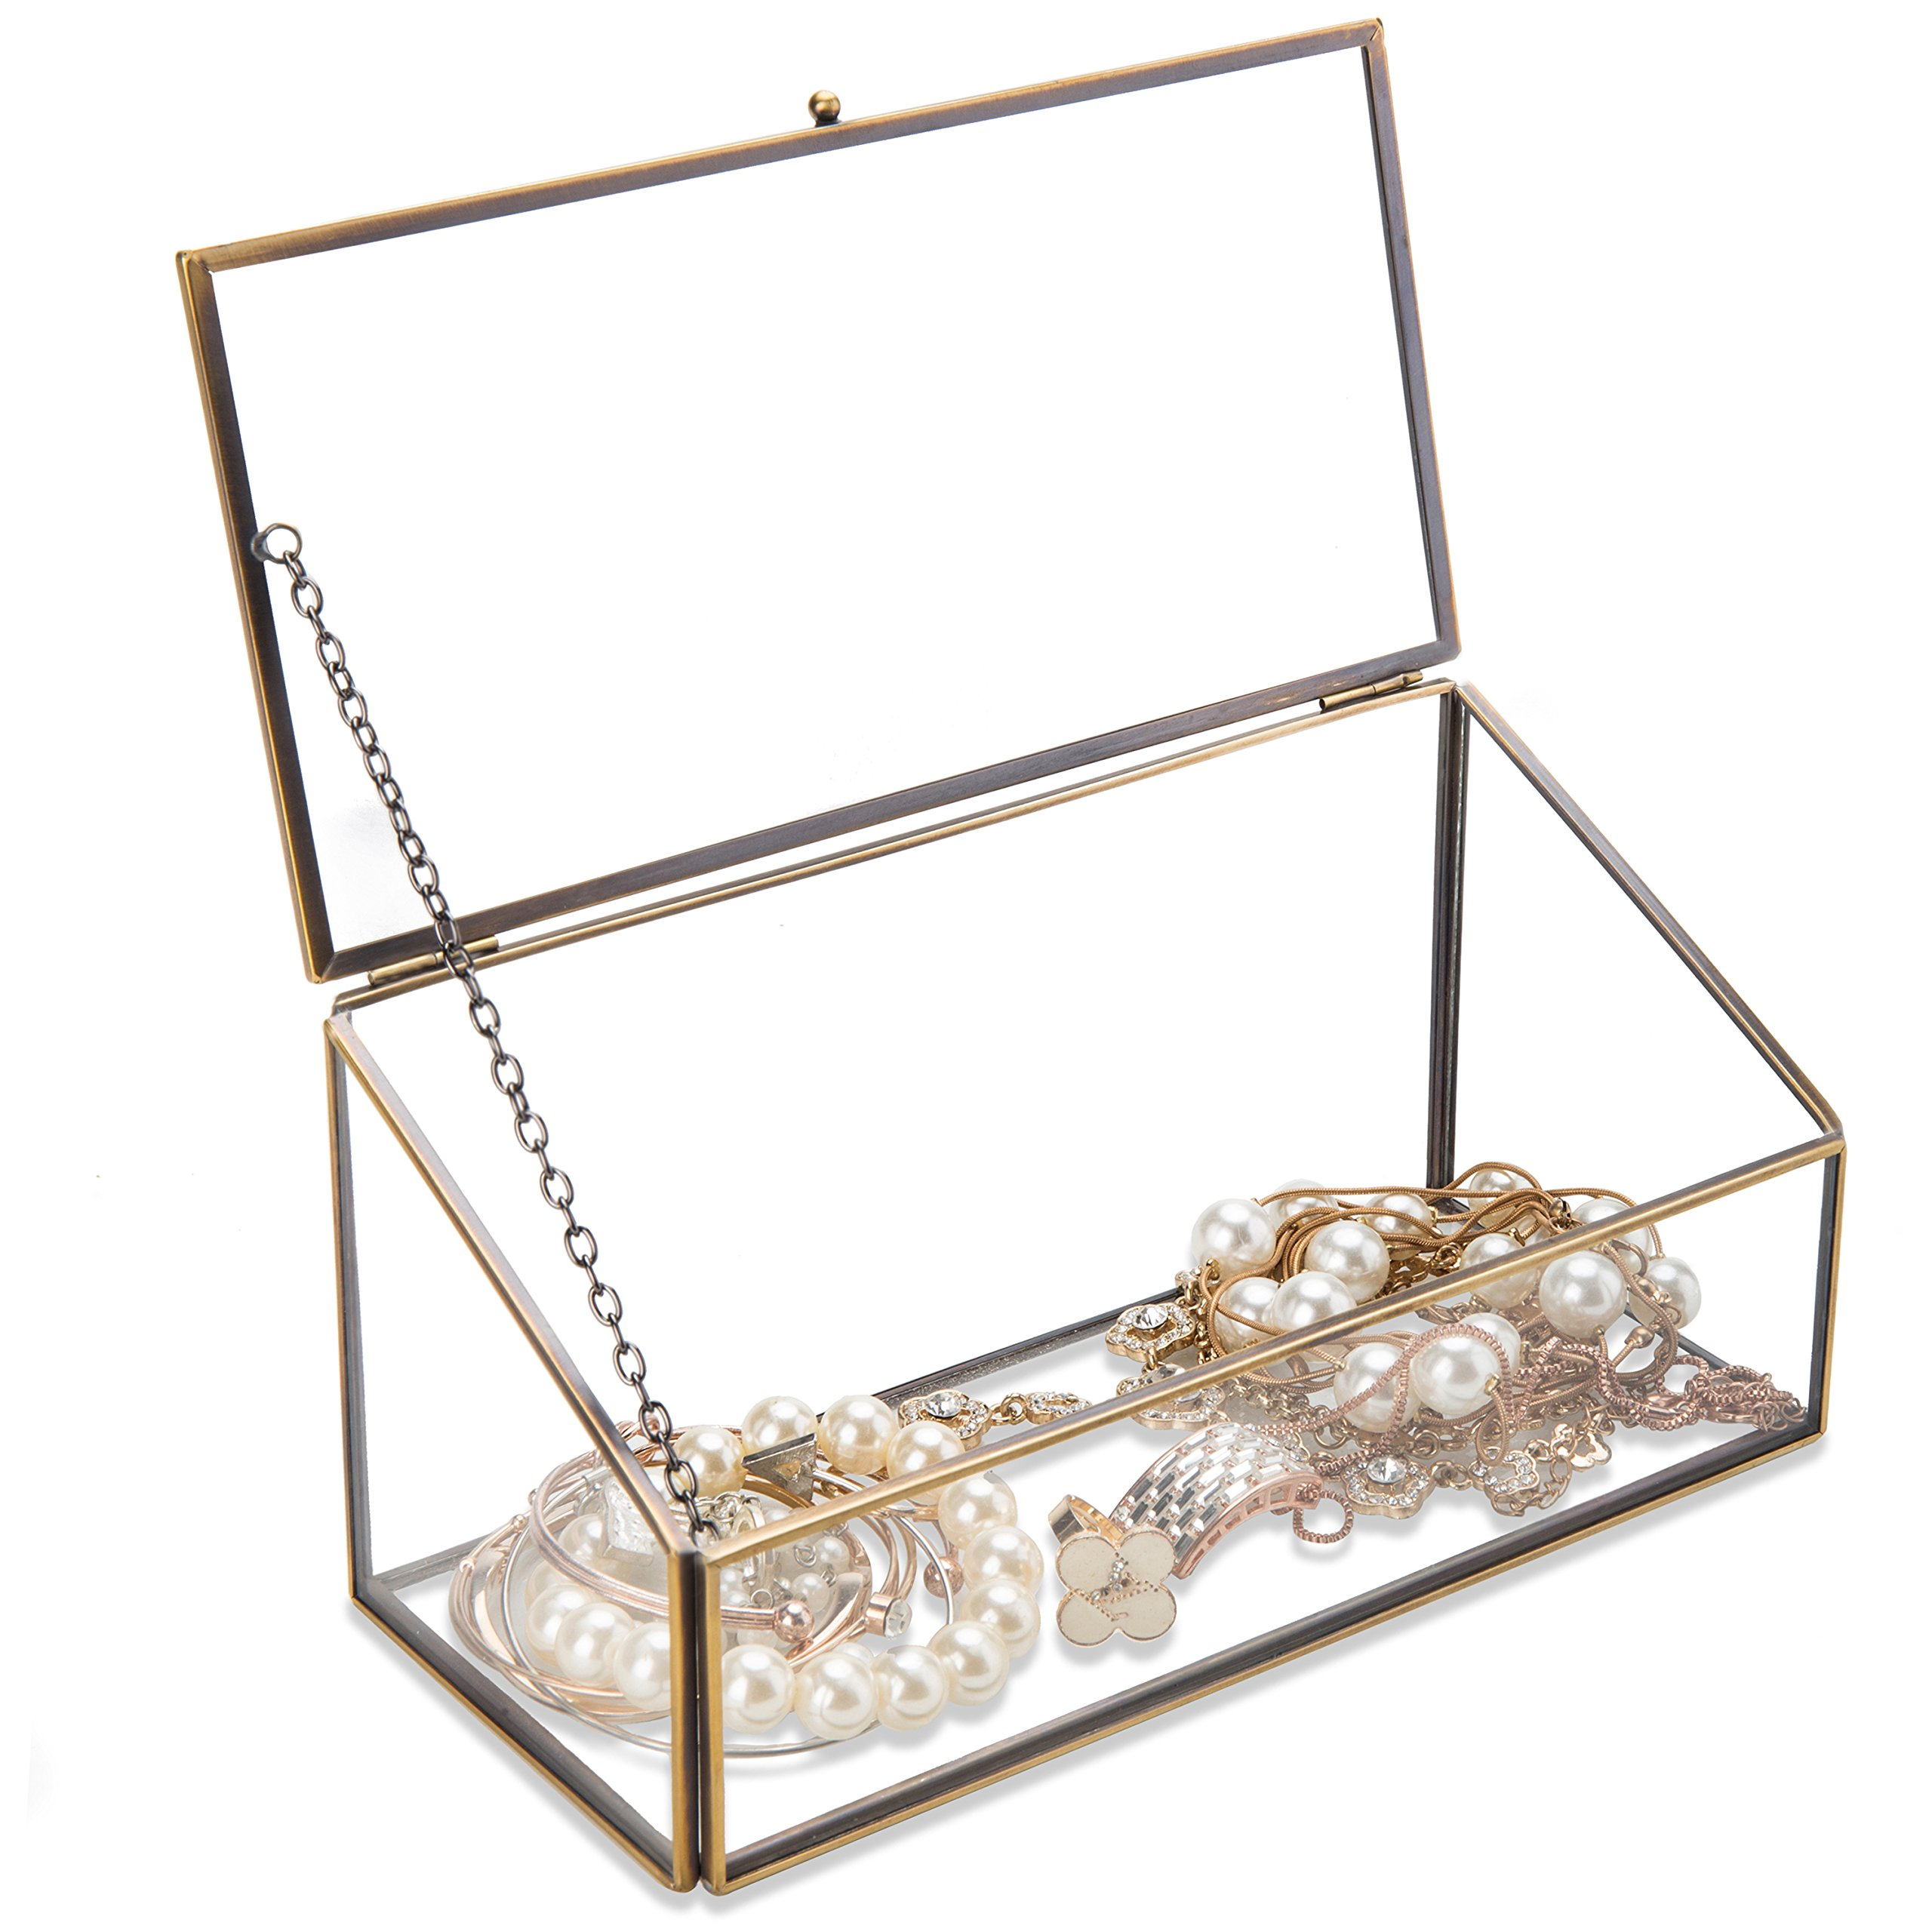 MyGift Decorative Clear Glass & Brass Tone Metal Slanted Top Lid Shadow Box Jewelry Chest/Storage Display Case by MyGift